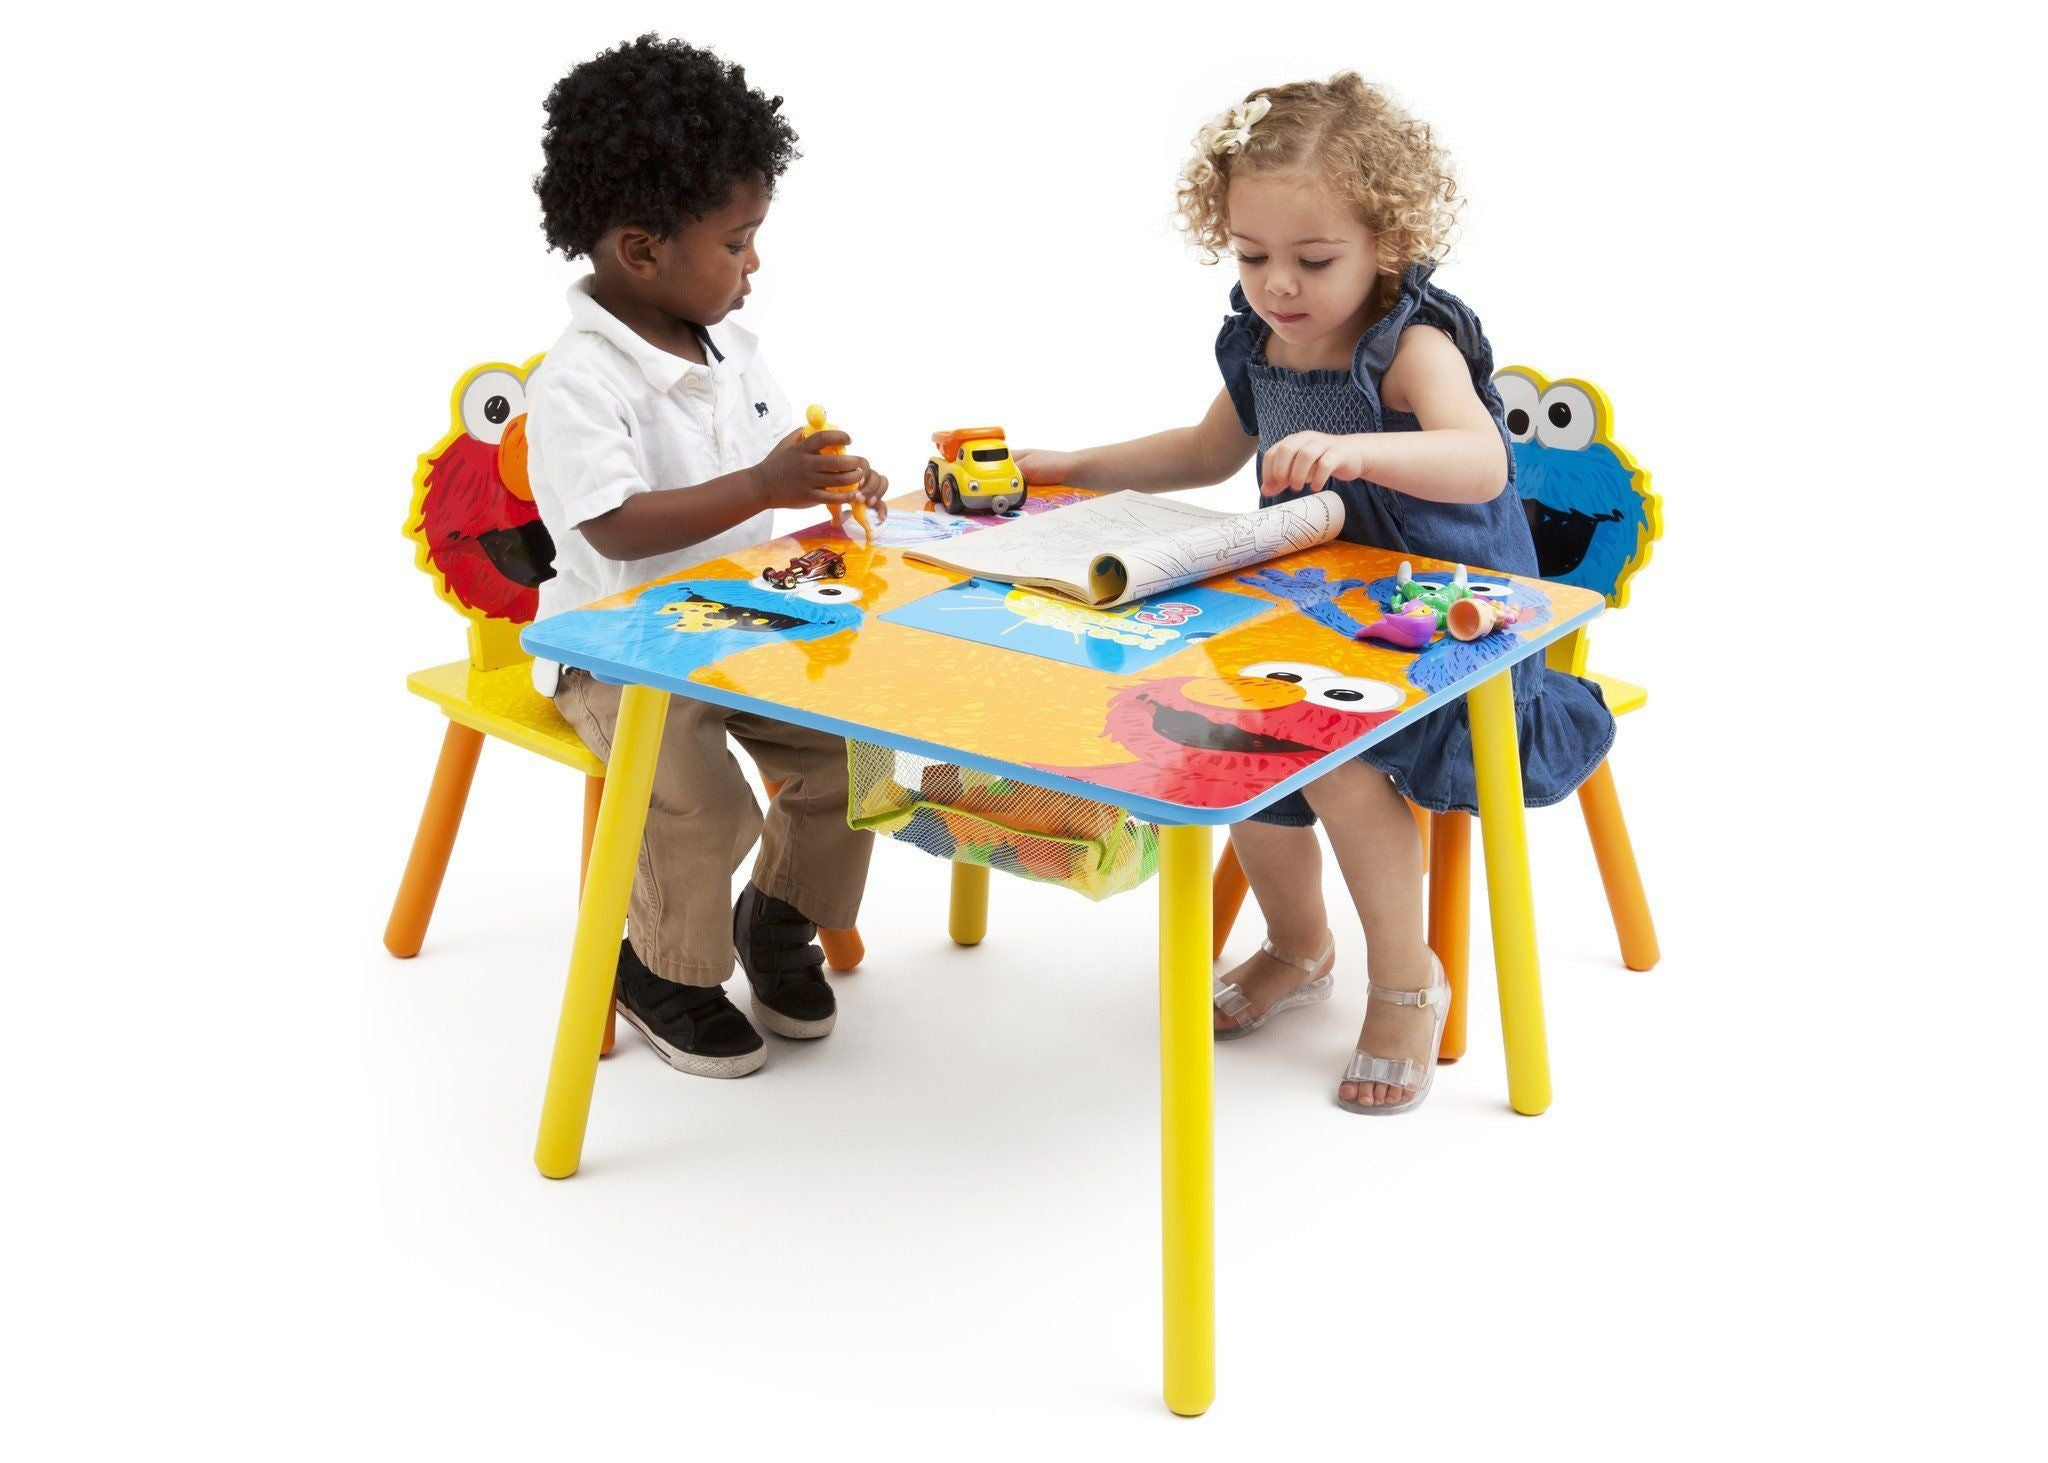 ... Delta Children Sesame Street Puzzle Table u0026 Chair Set Left Side View with Props a2a  sc 1 st  Delta Children & Sesame Street Puzzle Table u0026 Chair Set with Storage | Delta Children